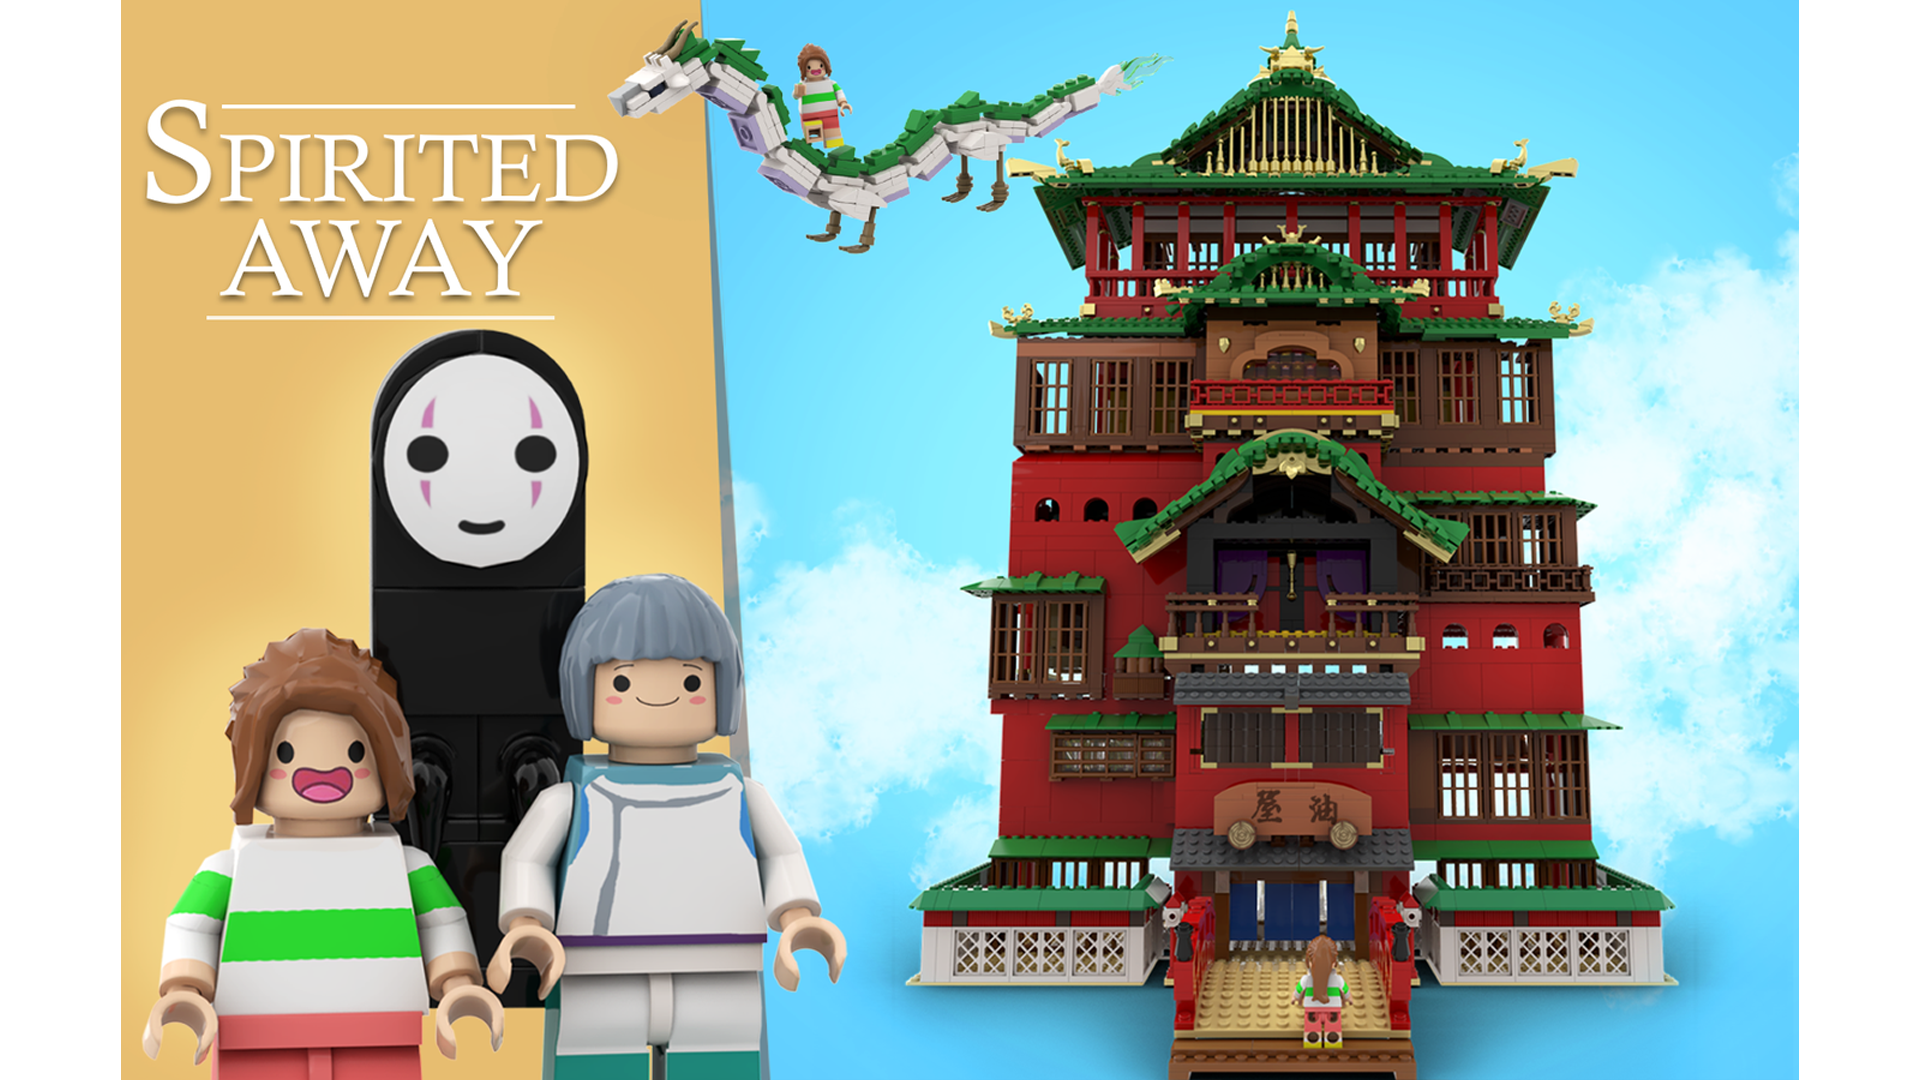 LEGO Could Make This Fan-Made 'Spirited Away' Set Official